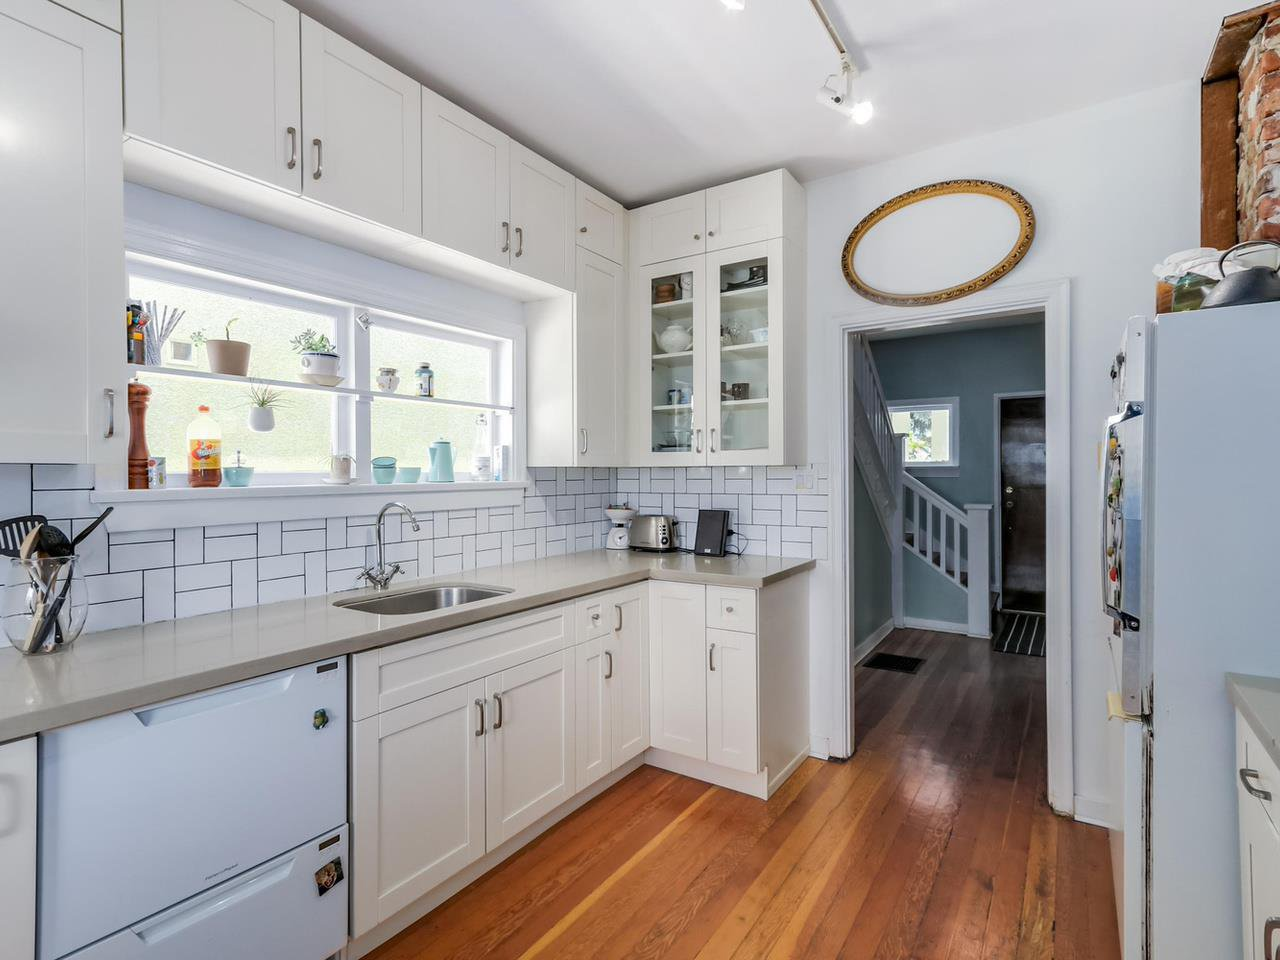 """Photo 11: Photos: 835 E 19TH Avenue in Vancouver: Fraser VE House for sale in """"CEDAR COTTAGE"""" (Vancouver East)  : MLS®# R2071745"""